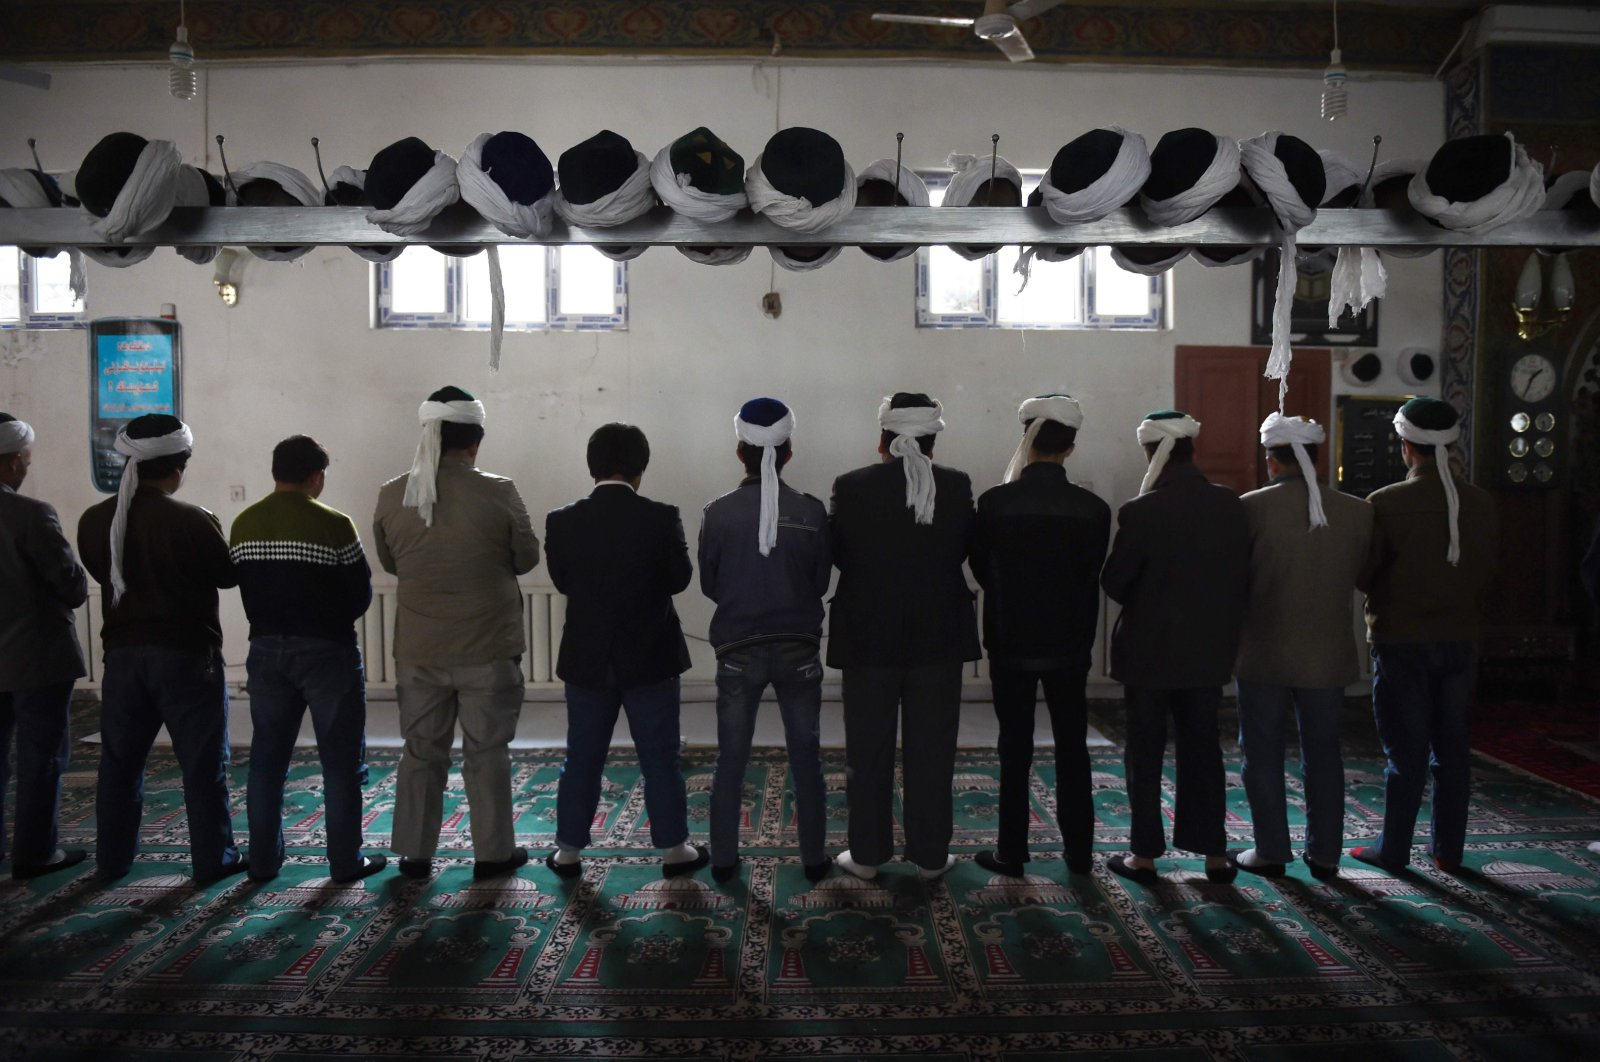 This file photo taken on April 16, 2015 shows Uighur men praying in a mosque in Hotan, in China's western Xinjiang region.(AFP Photo)